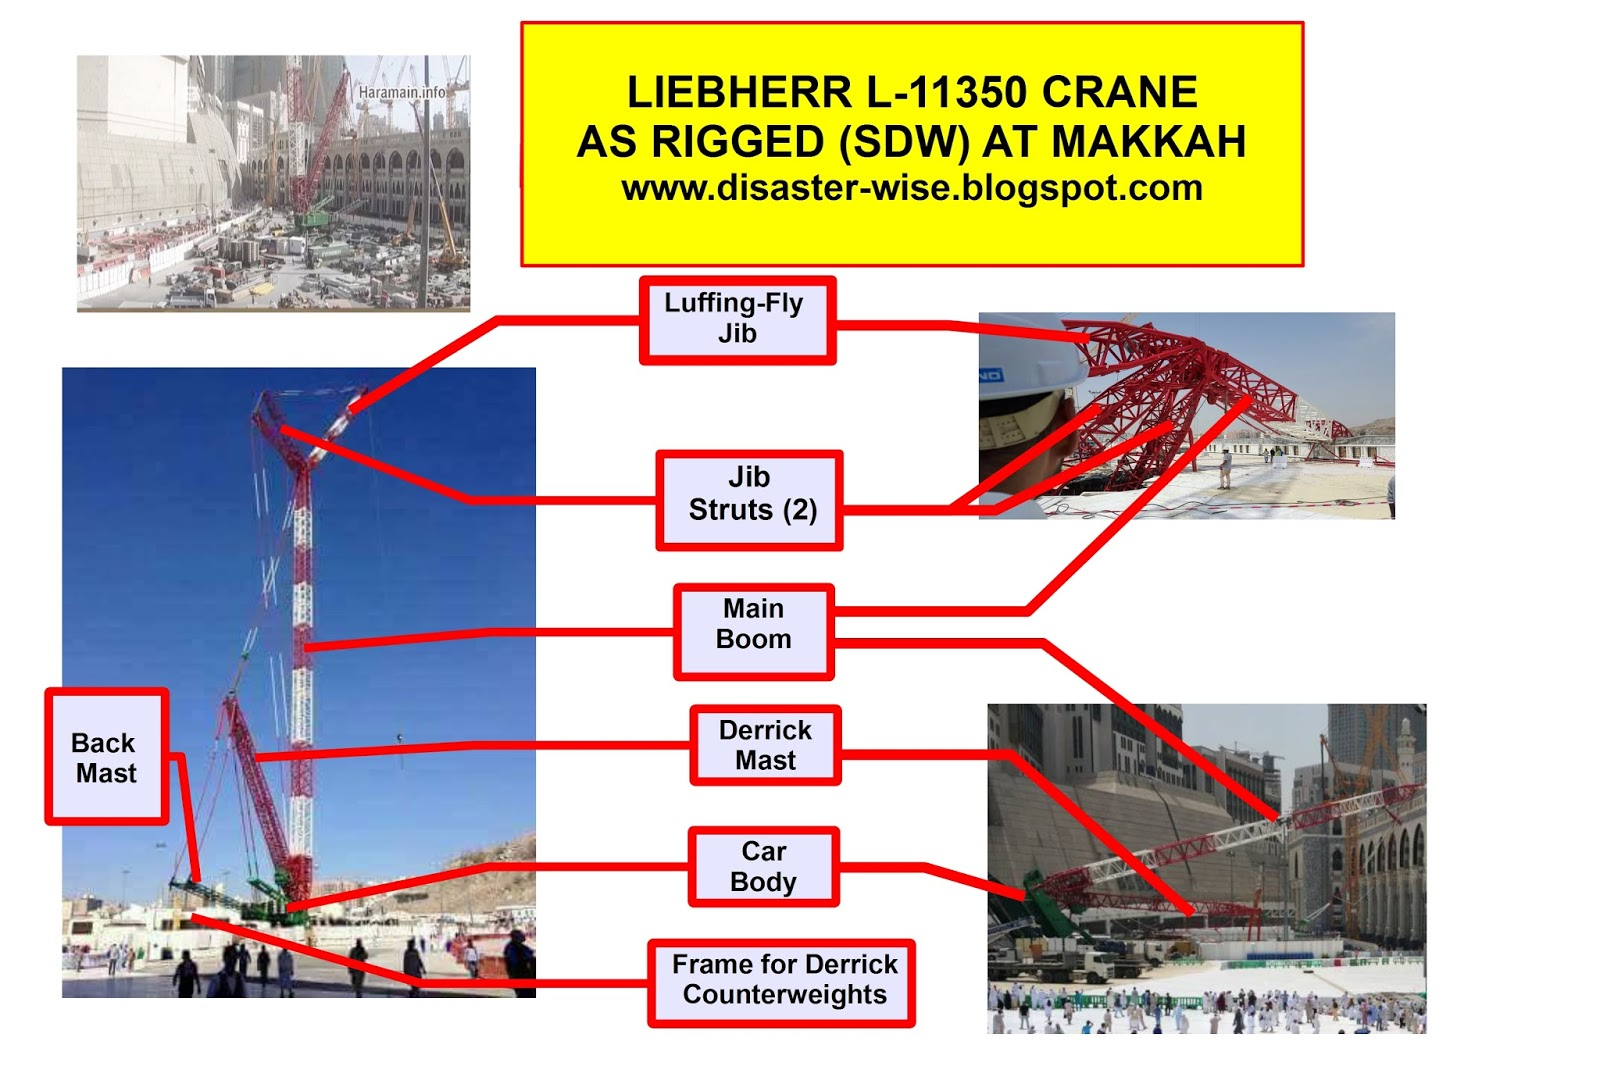 Disaster Wise 2016 Liebherr Key Switch Wiring Diagram The That Fell In Ksa Was A Good Deal Bigger Than One New York And It Backward Rather Forward But From What I Read